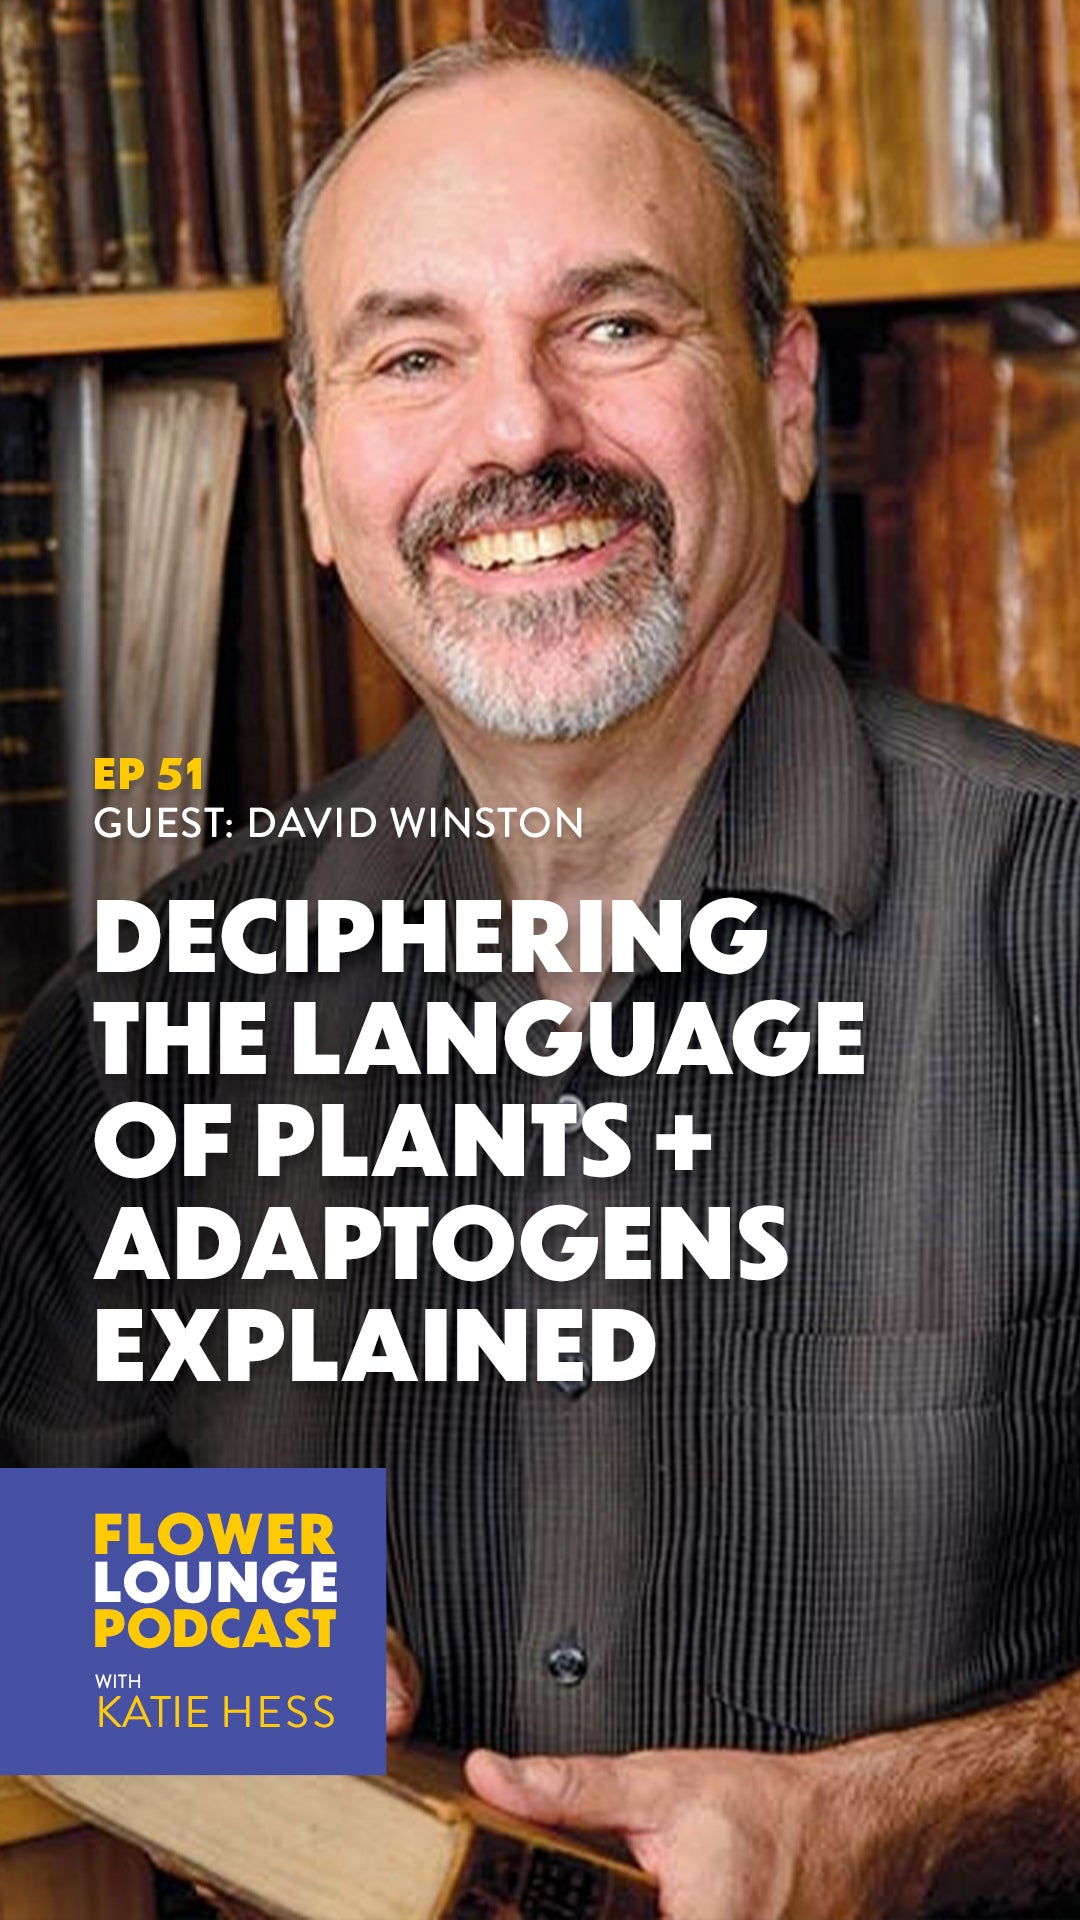 Deciphering the Language of Plants + Adaptogens Explained with David Winston on the Flowerlounge Podcast with Katie Hess